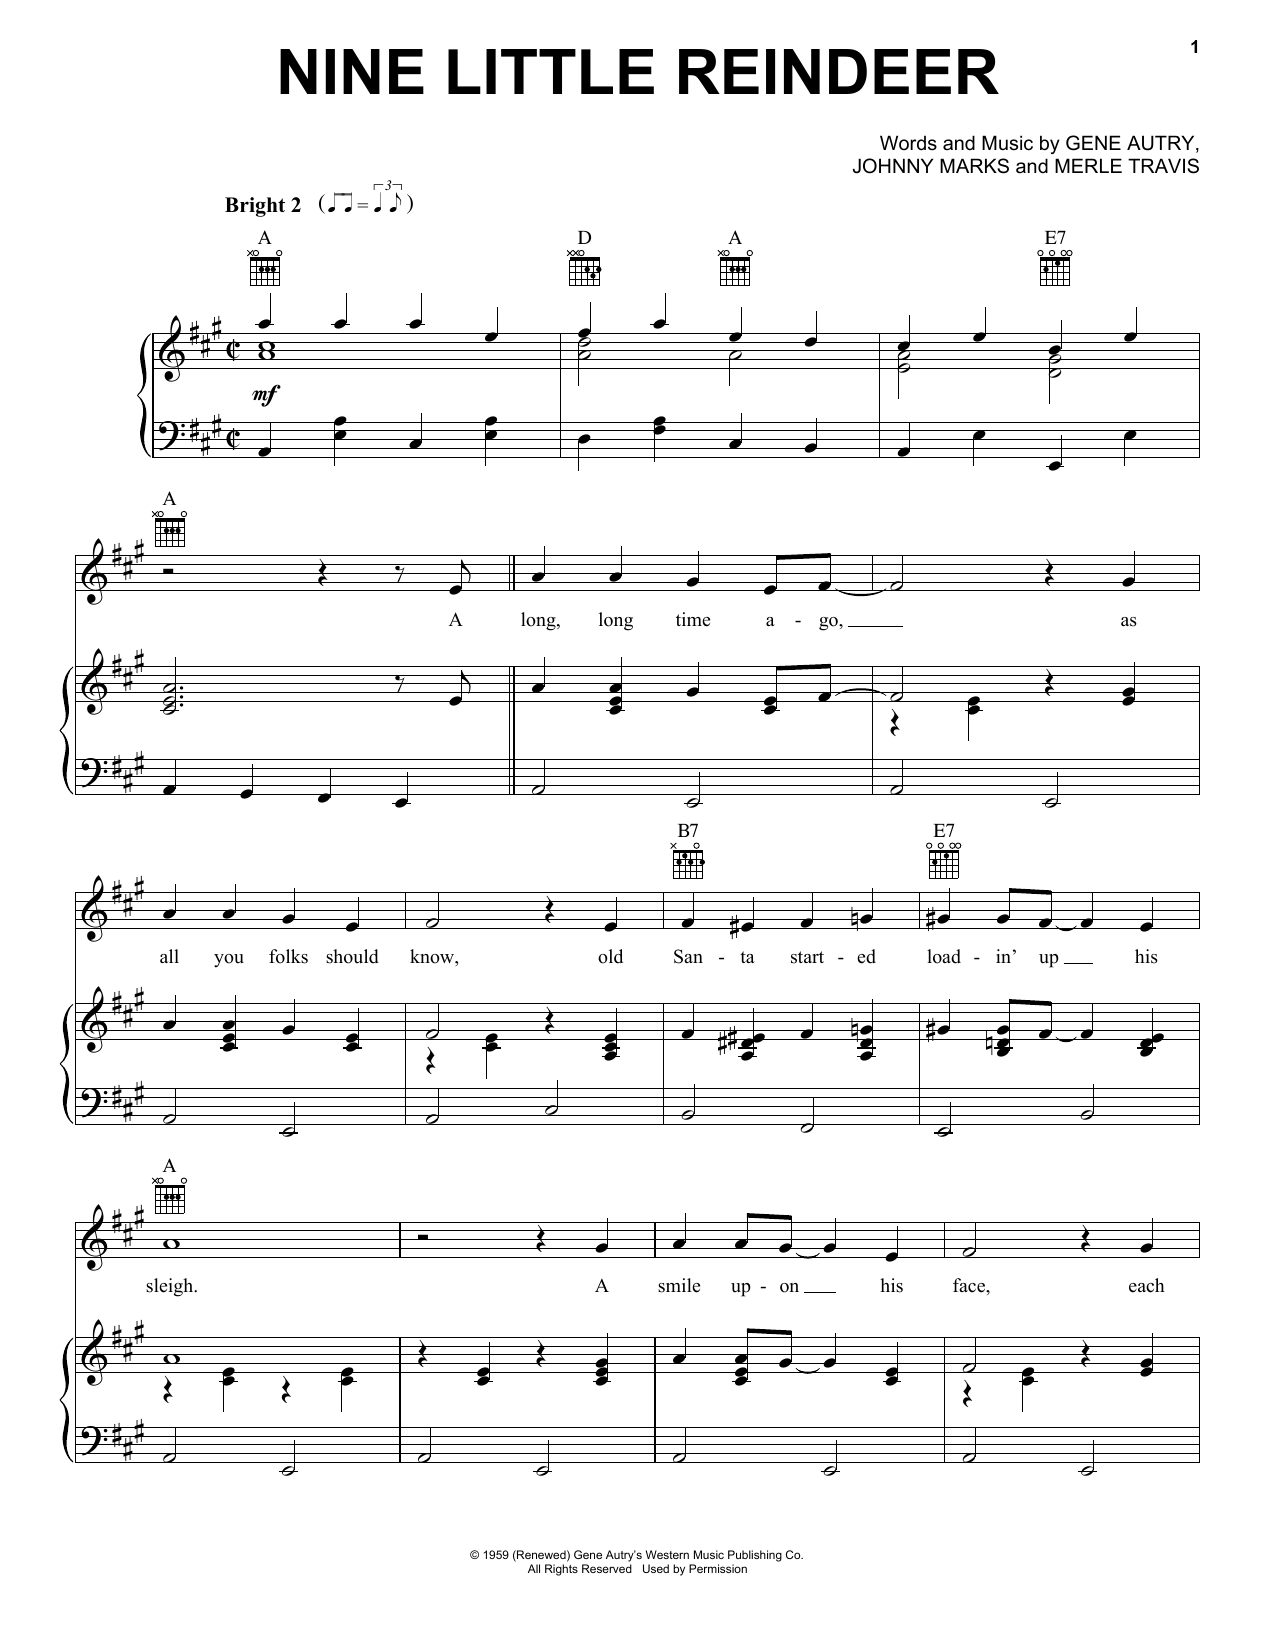 Gene Autry Nine Little Reindeer sheet music notes and chords. Download Printable PDF.